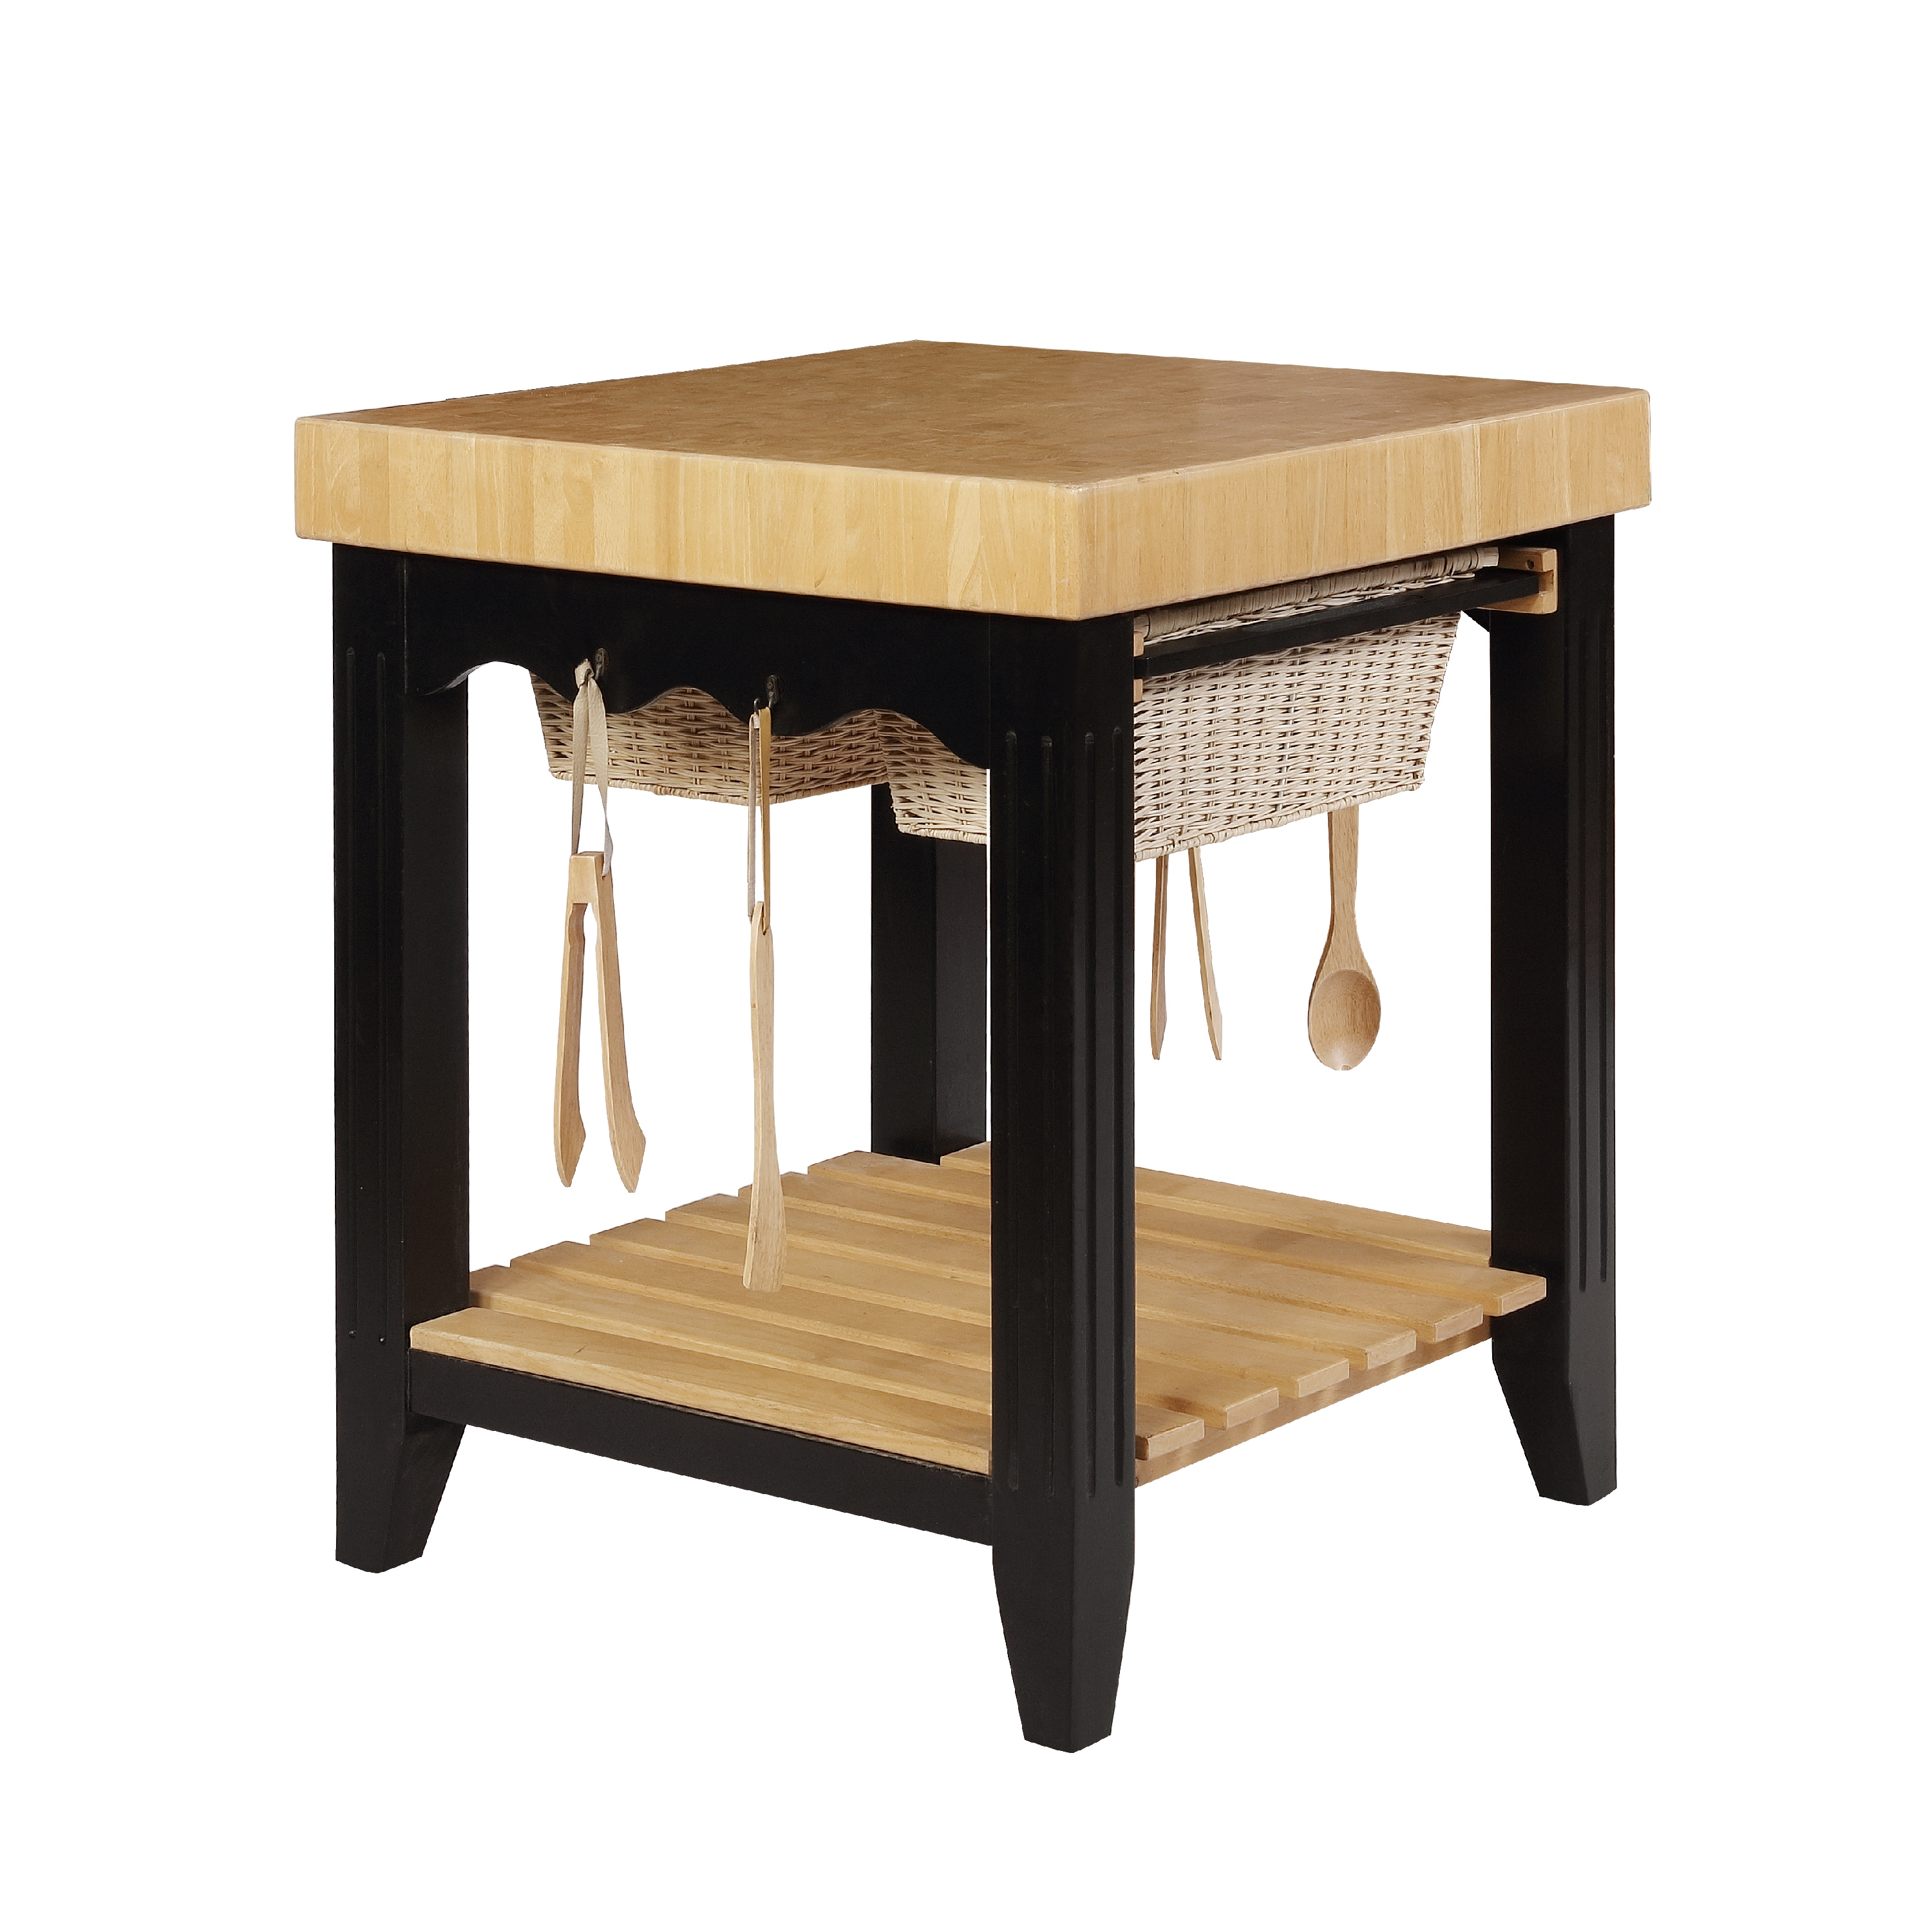 ordinary Chopping Block Kitchen Island #10: Powell Color Story Antique Black Butcher Block Kitchen Island - Kitchen  Islands and Carts at Hayneedle